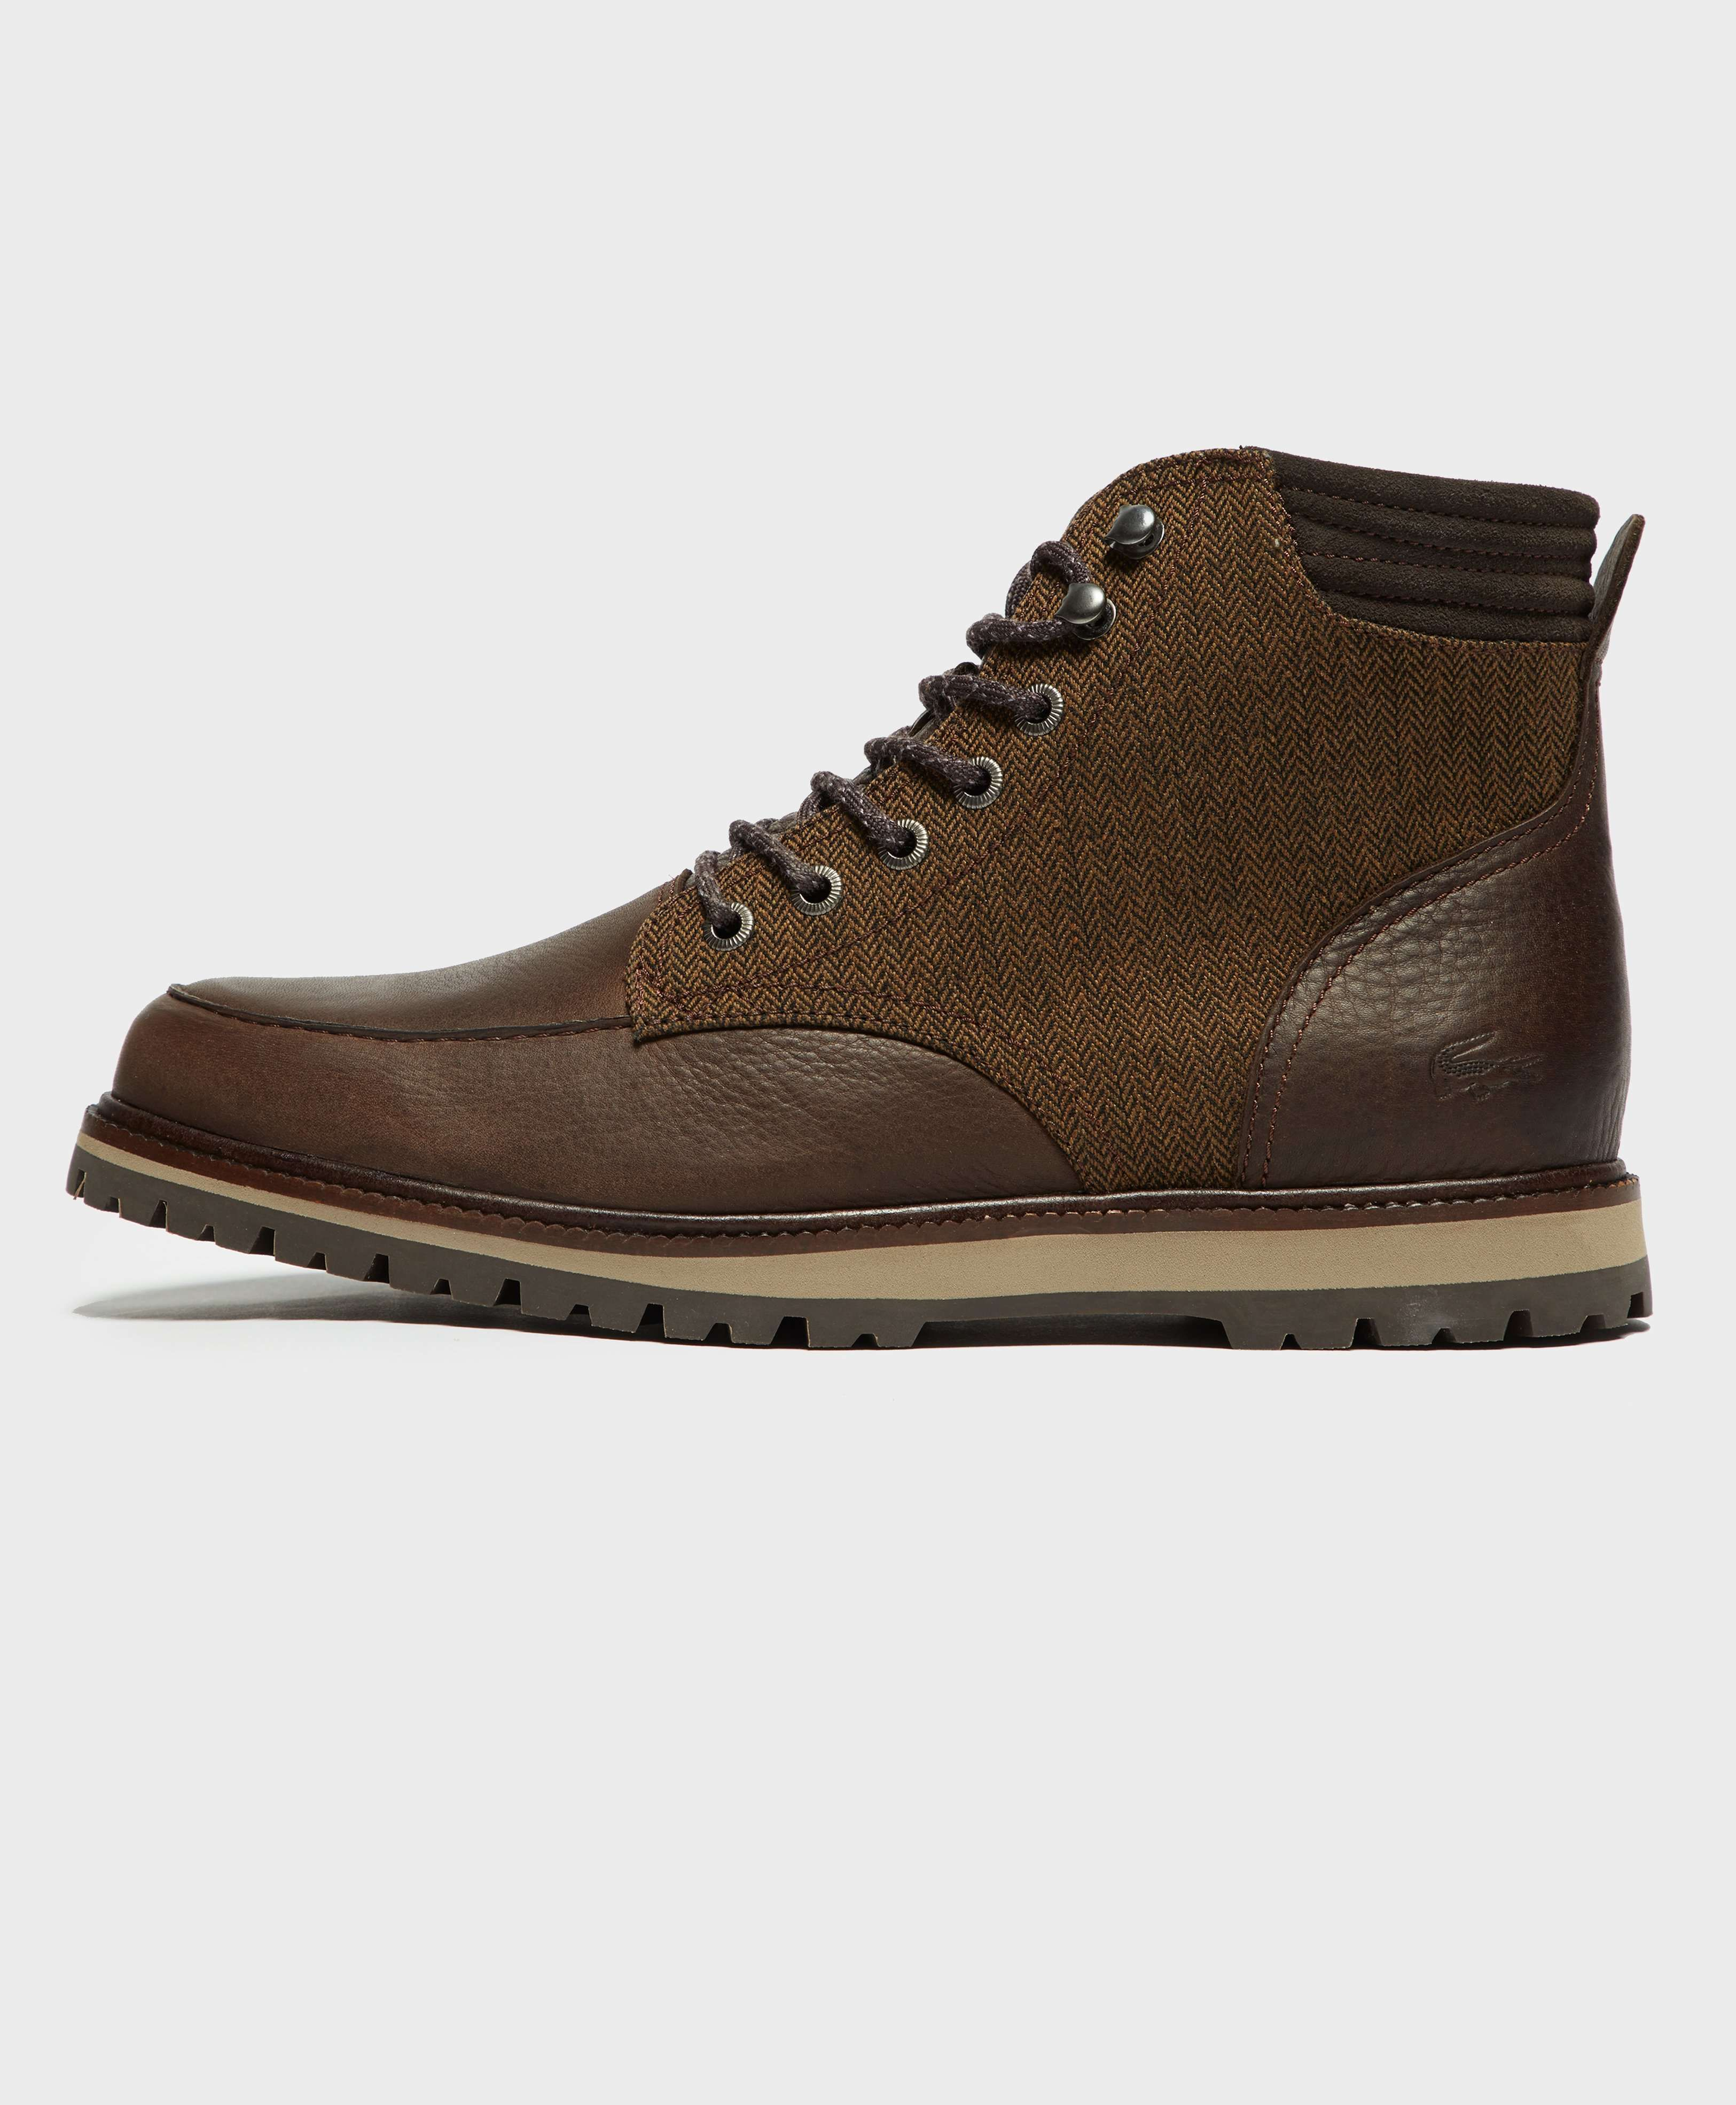 Lacoste Montbard Boot - scotts supply the best clothing, latest footwear  and essential accessories from